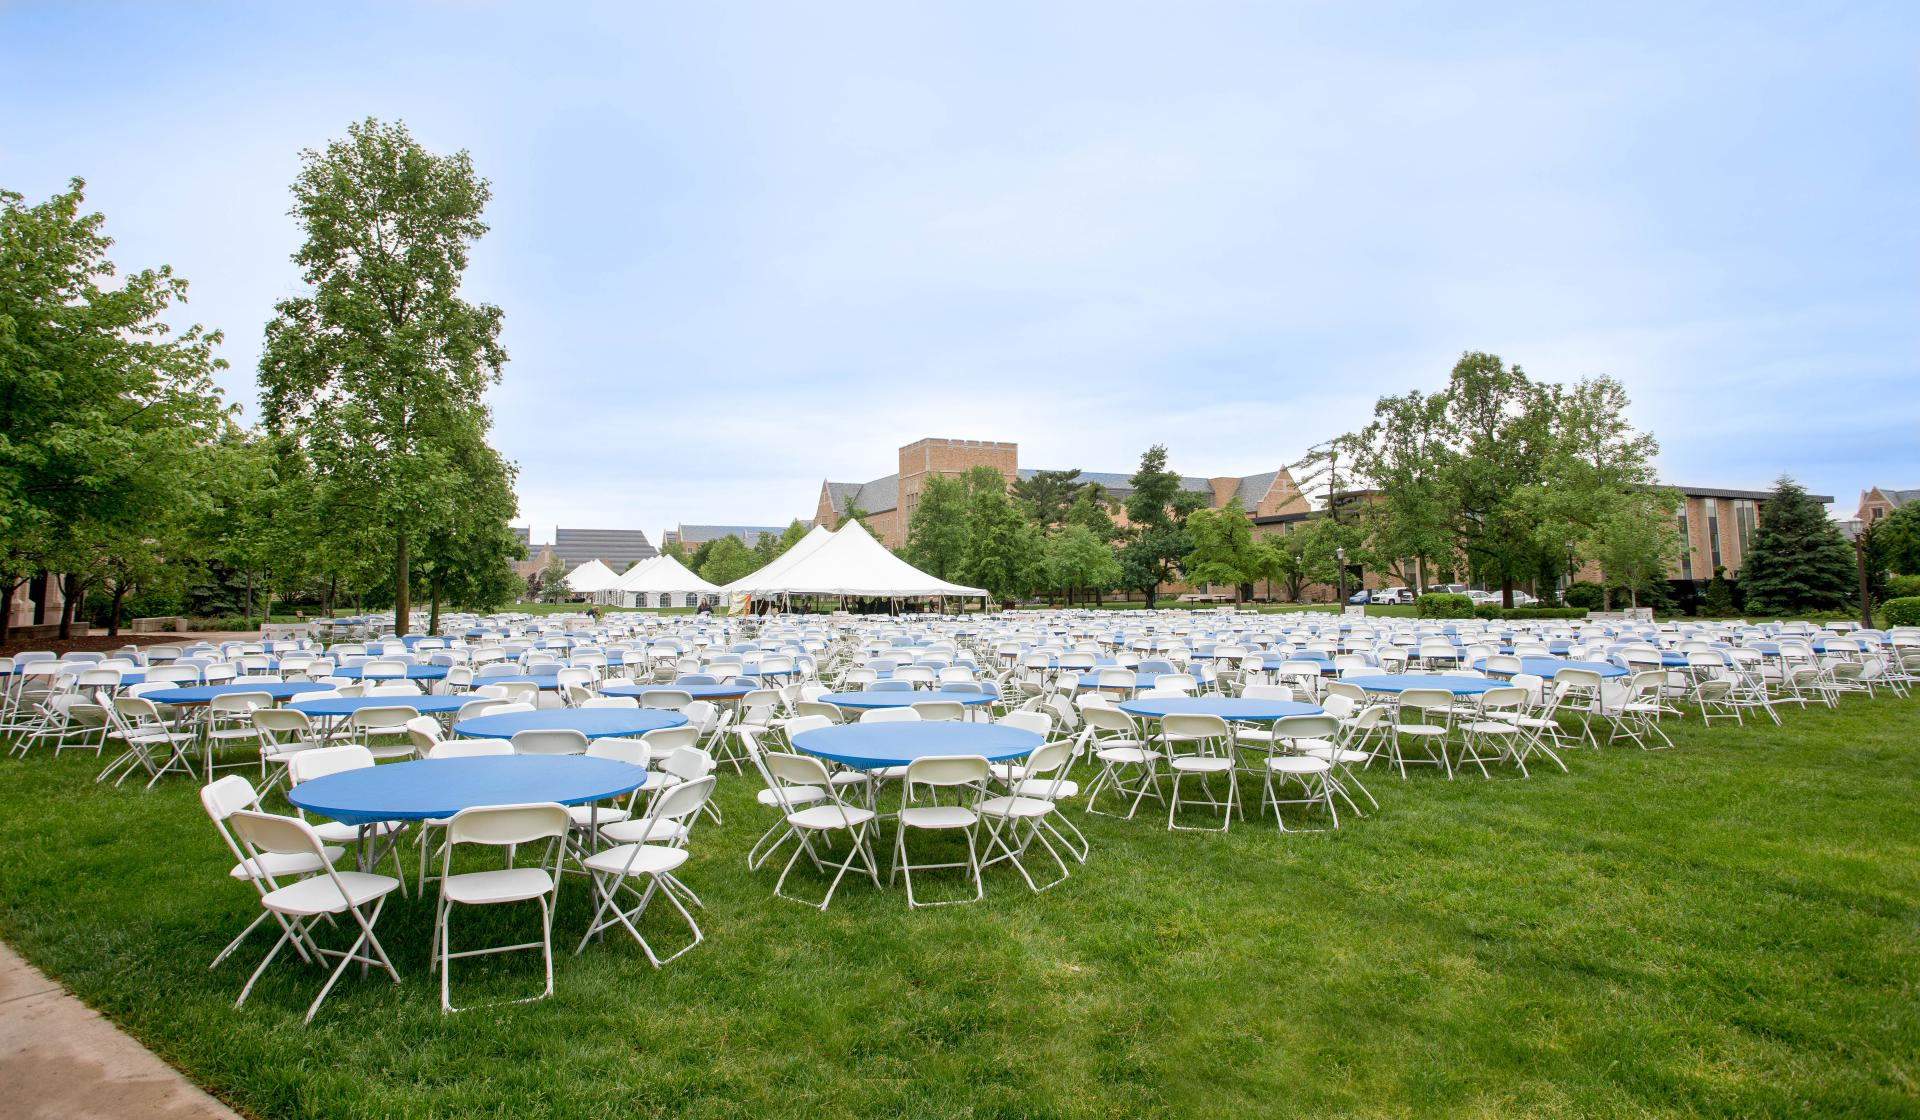 Tables and Chairs Set For Post-Commencement Activities